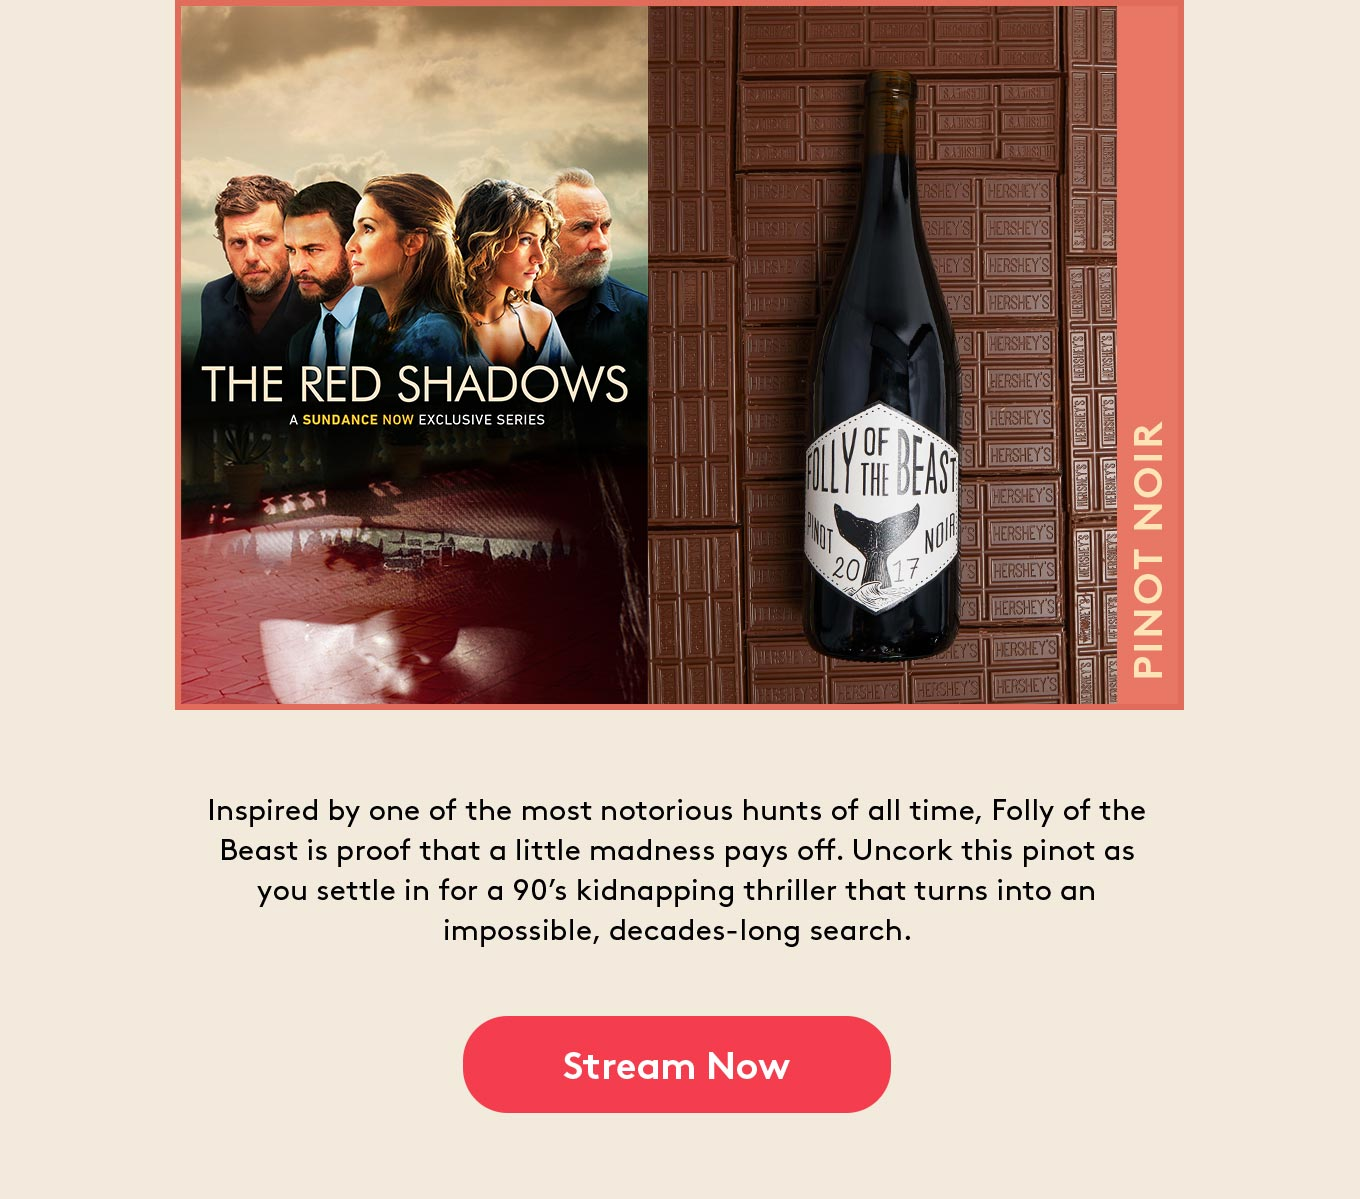 Inspired by one of the most notorious hunts of all time, Folly of the Beast is proof that a little madness pays off. Uncork this pinot as you settle in for a 90's kidnapping thriller that turns into an impossible, decades-long search.